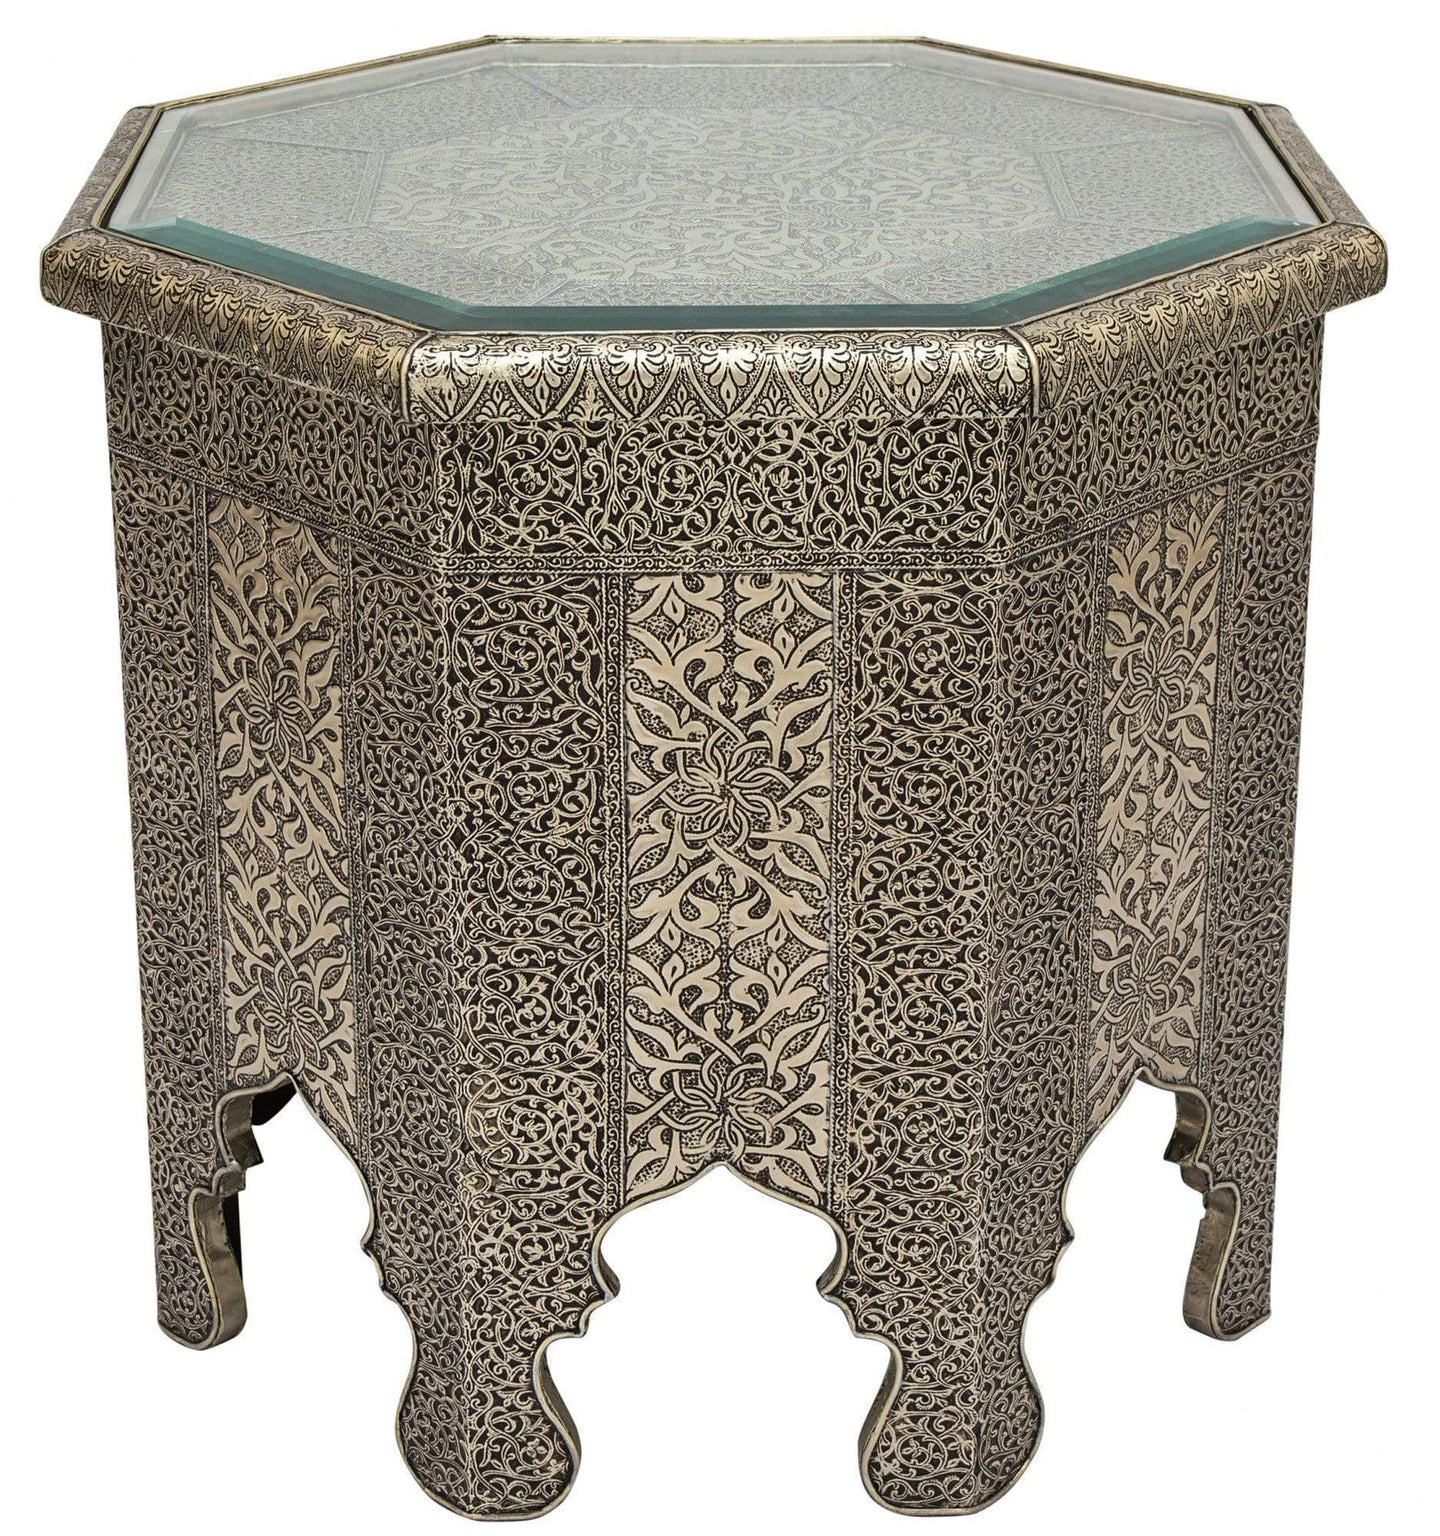 HASNA SIDE TABLE